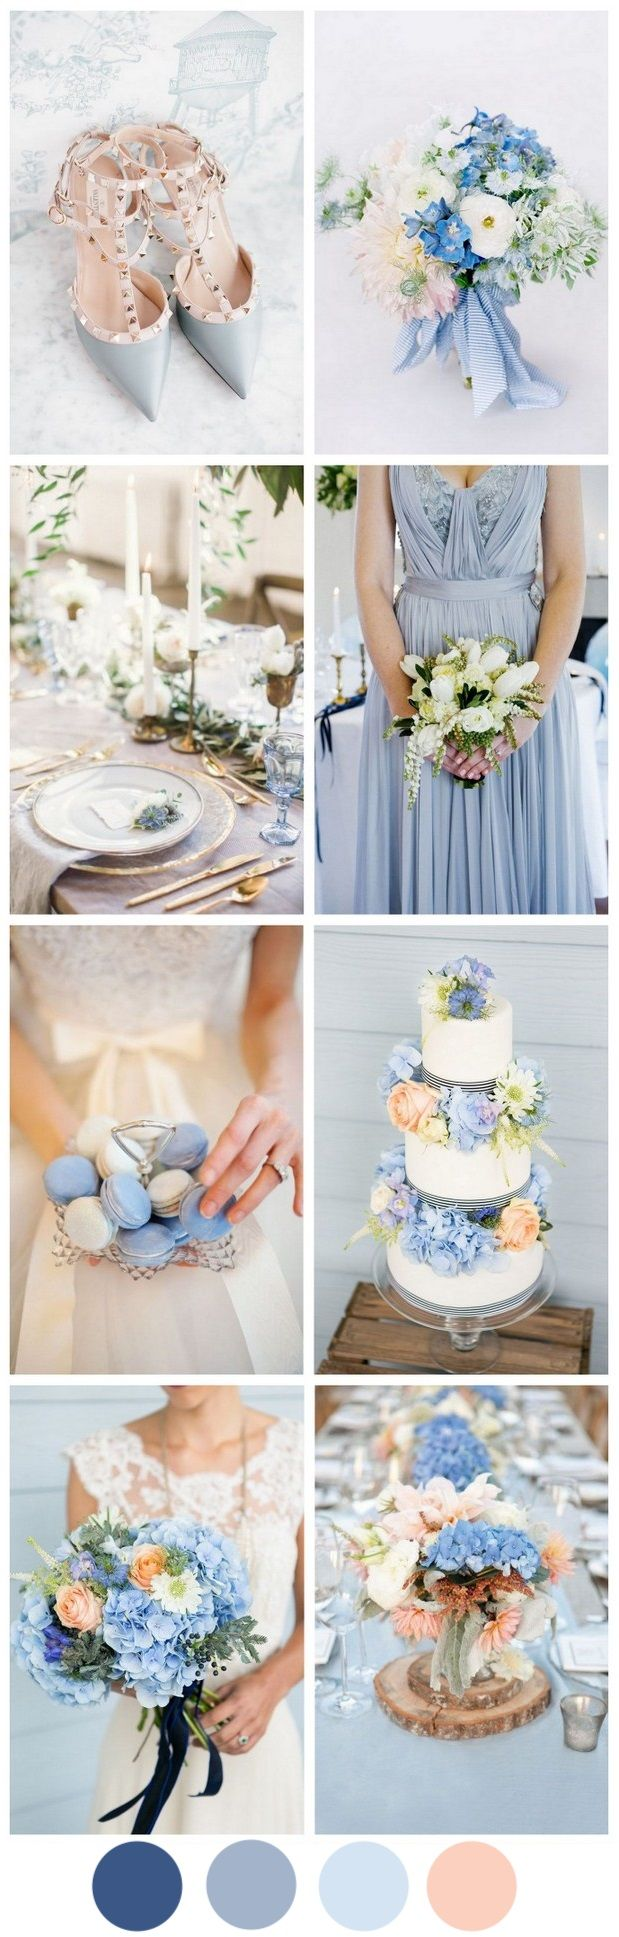 Cornflower Blue & Peach - A Very Sweet Summer Wedding Palette ...